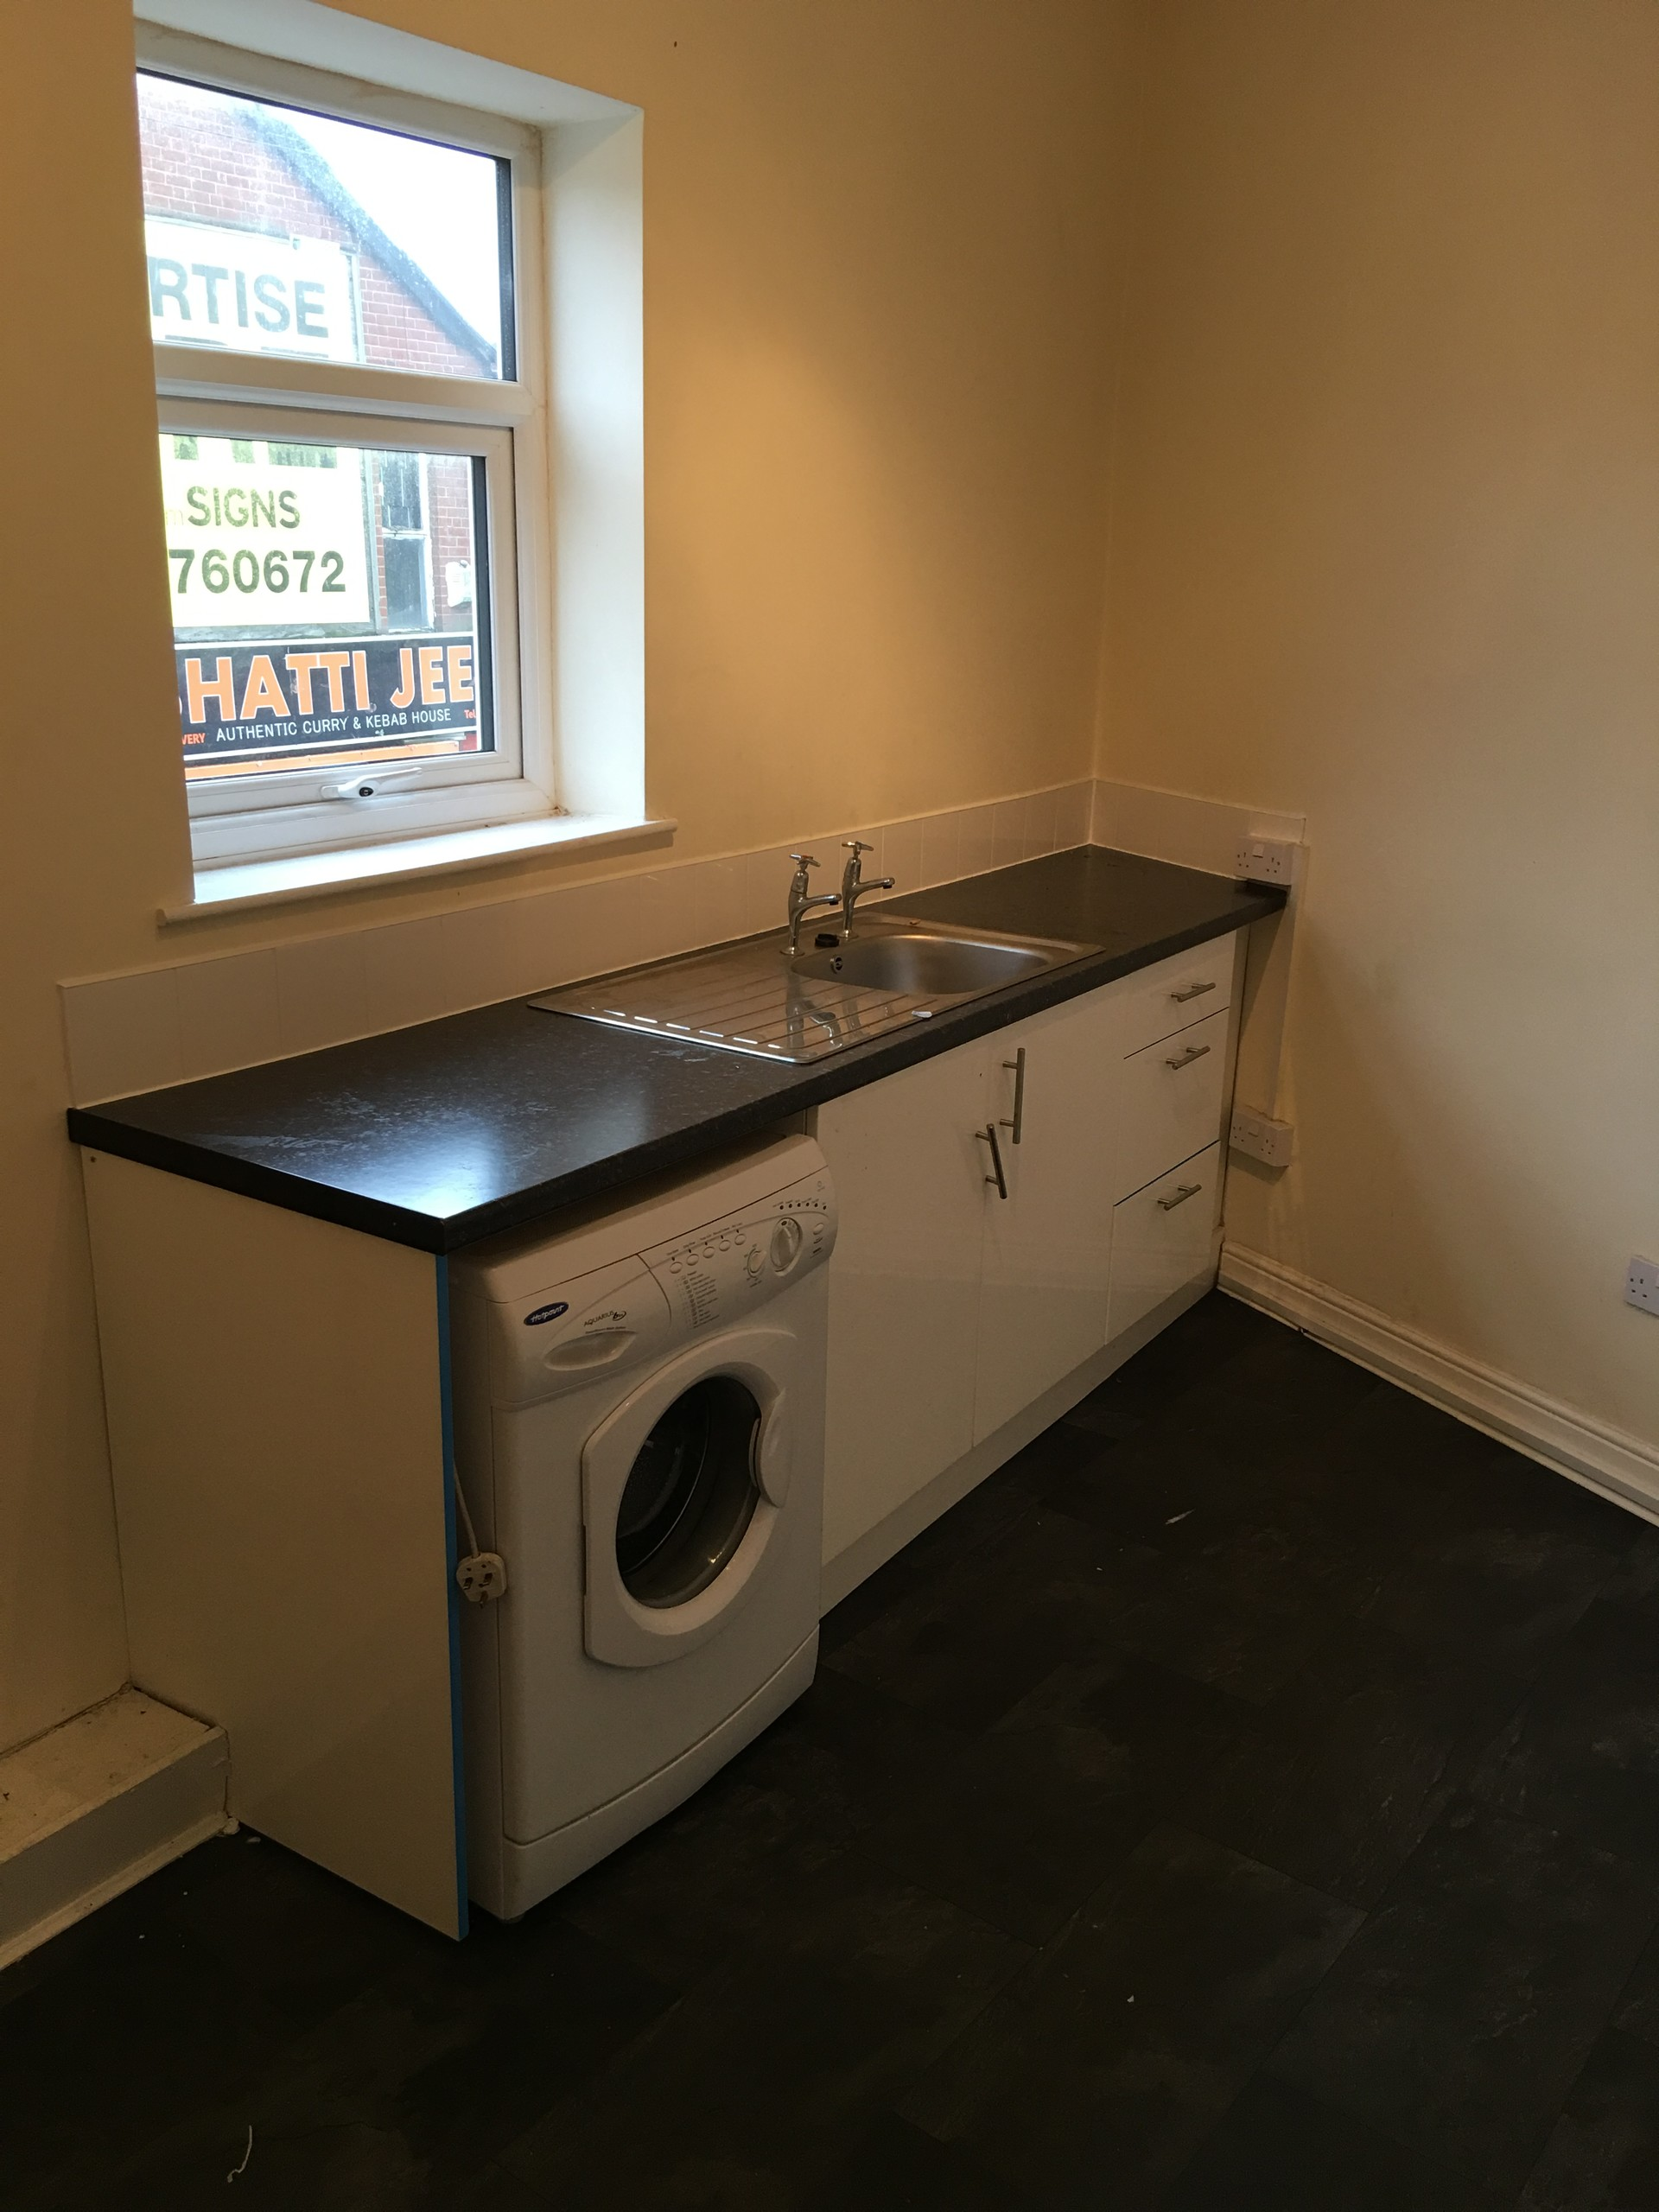 Flat to let in gorton facing McDonald's/gym/park